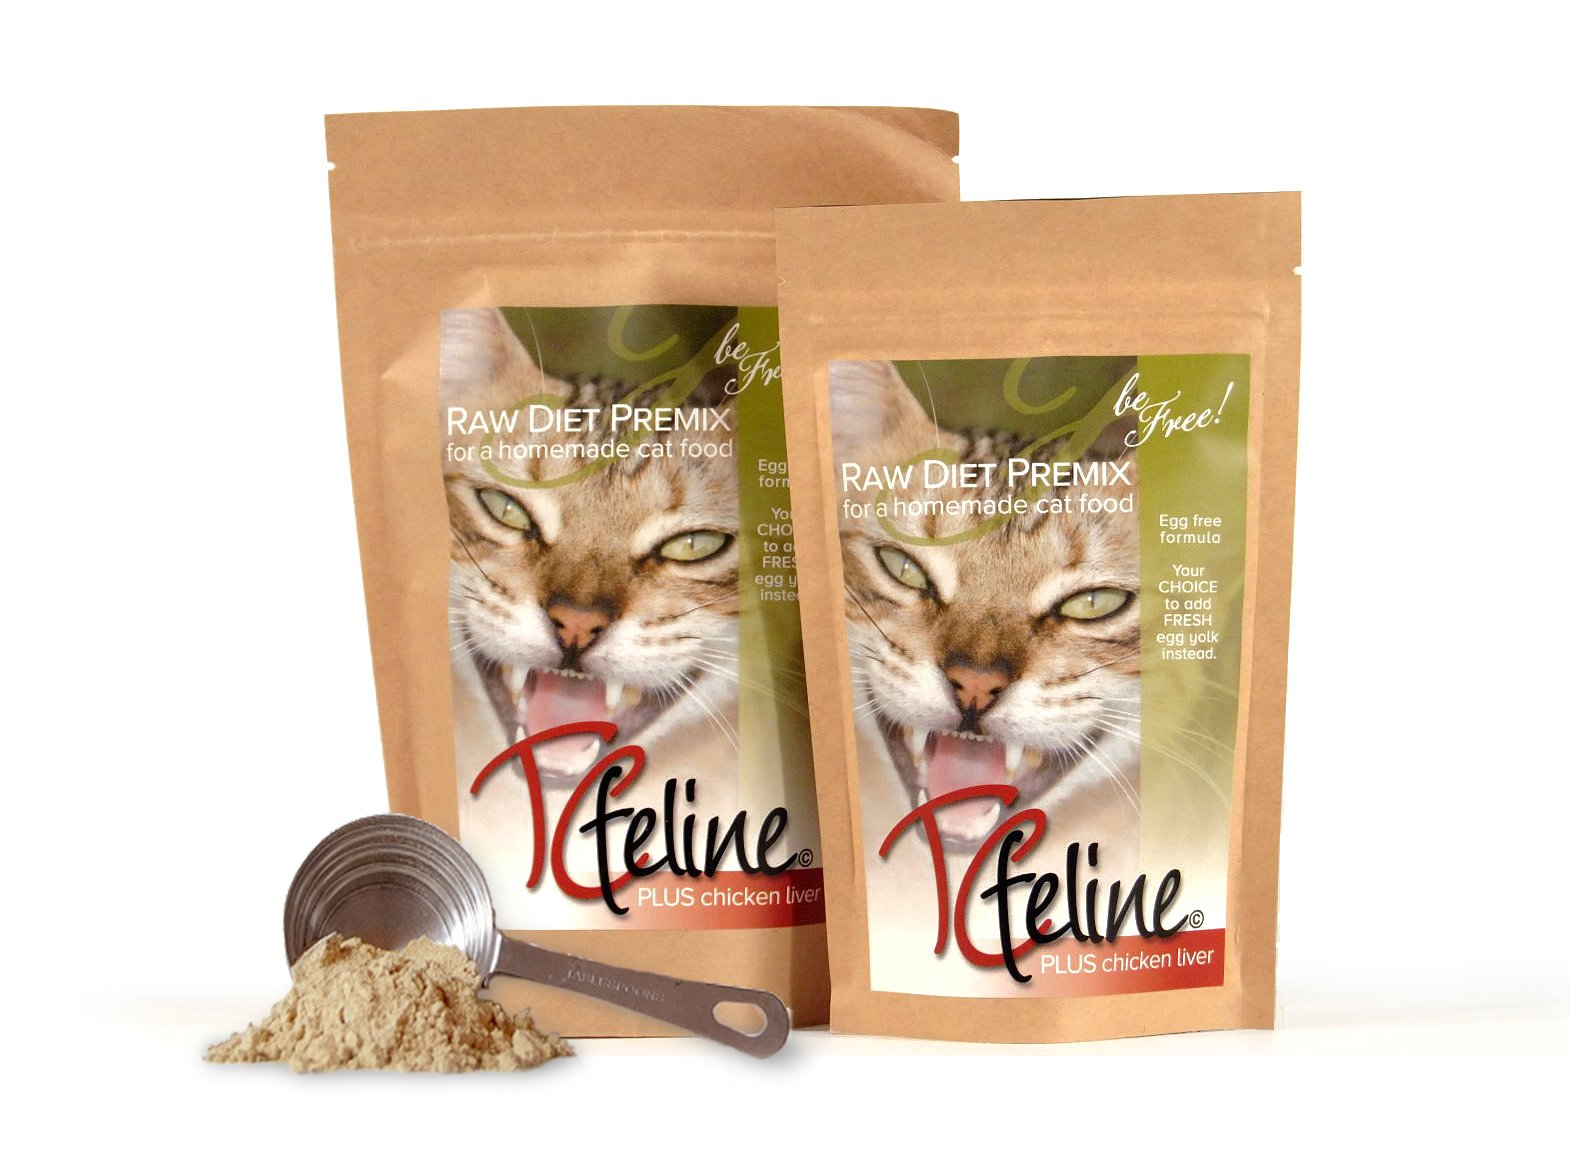 TCfeline Raw Cat Food - A Premix (Supplement) to Make a Homemade raw cat Food Diet. All Natural, Grain Free, Human Grade and Species Appropriate Raw for Cats. (with Chicken Liver - Regular 17 oz) by The Total Cat Store